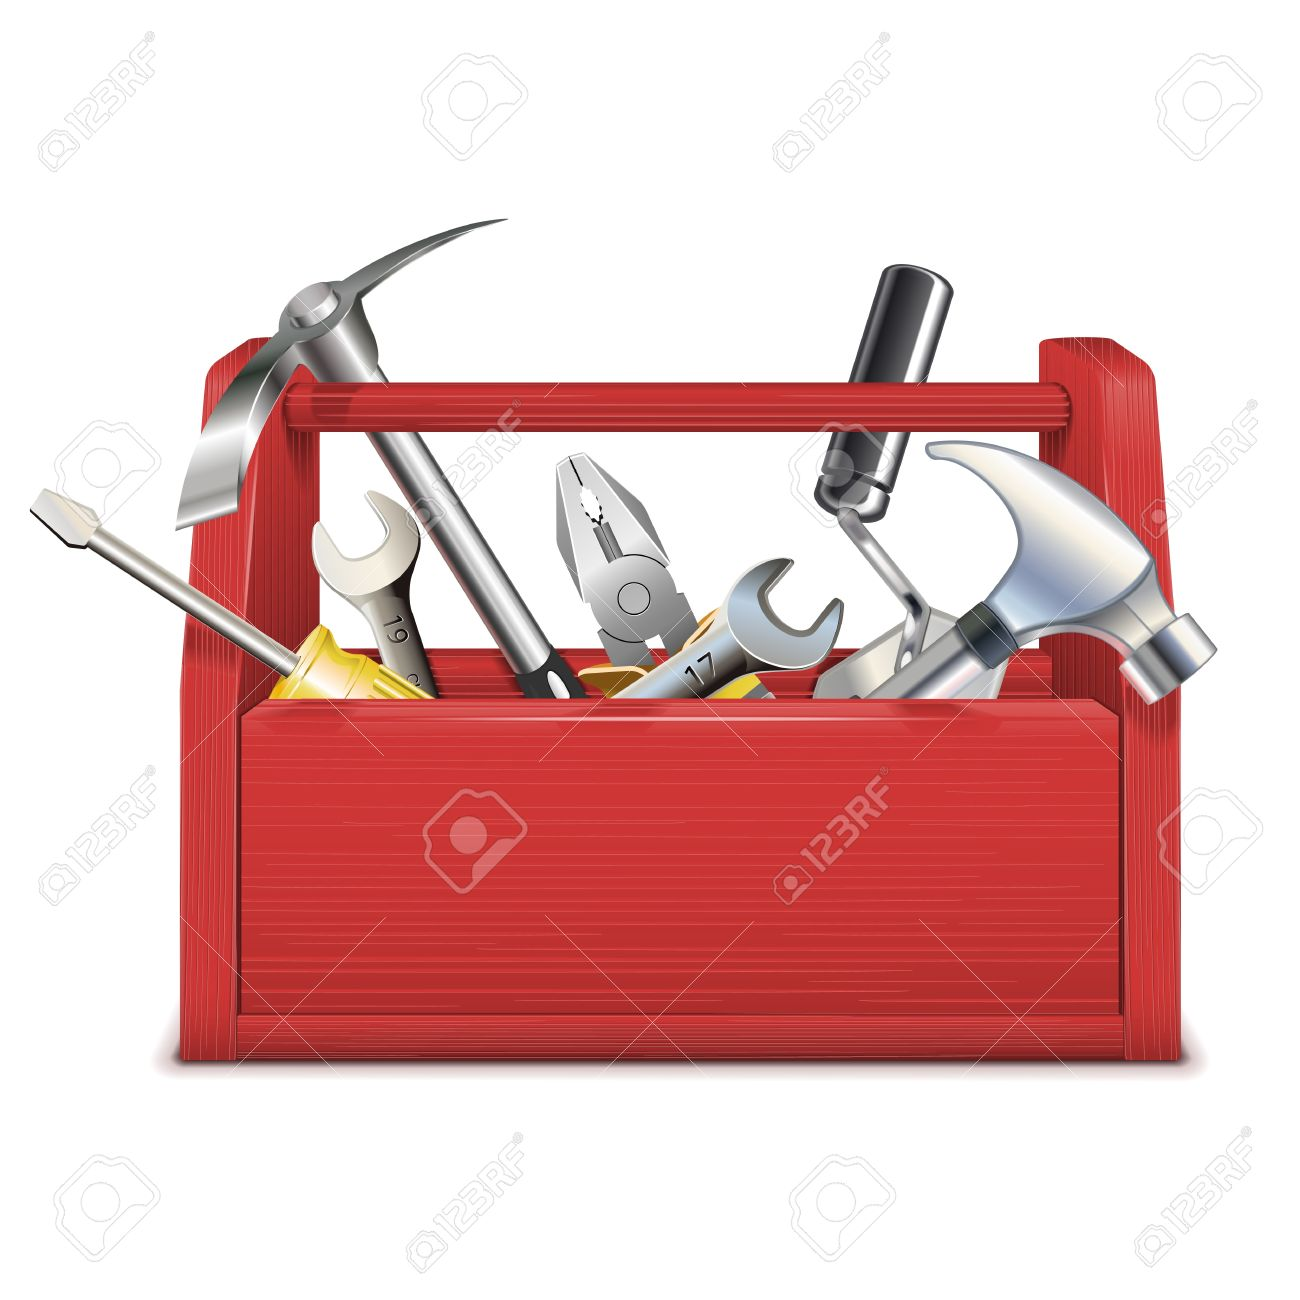 10,983 Toolbox Stock Vector Illustration And Royalty Free Toolbox.